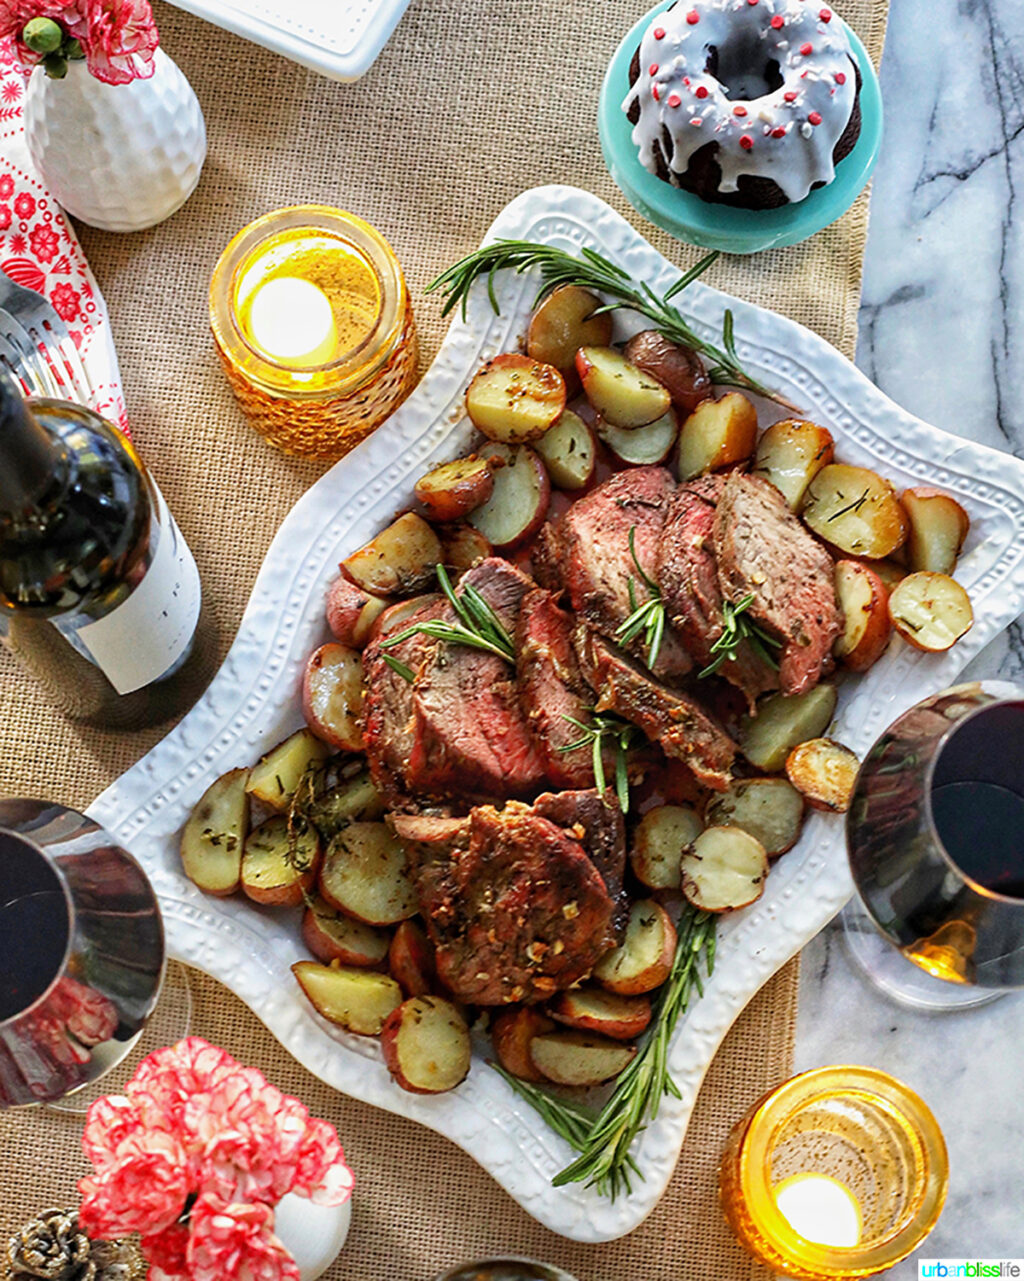 sirloin tip roast with glasses of wine